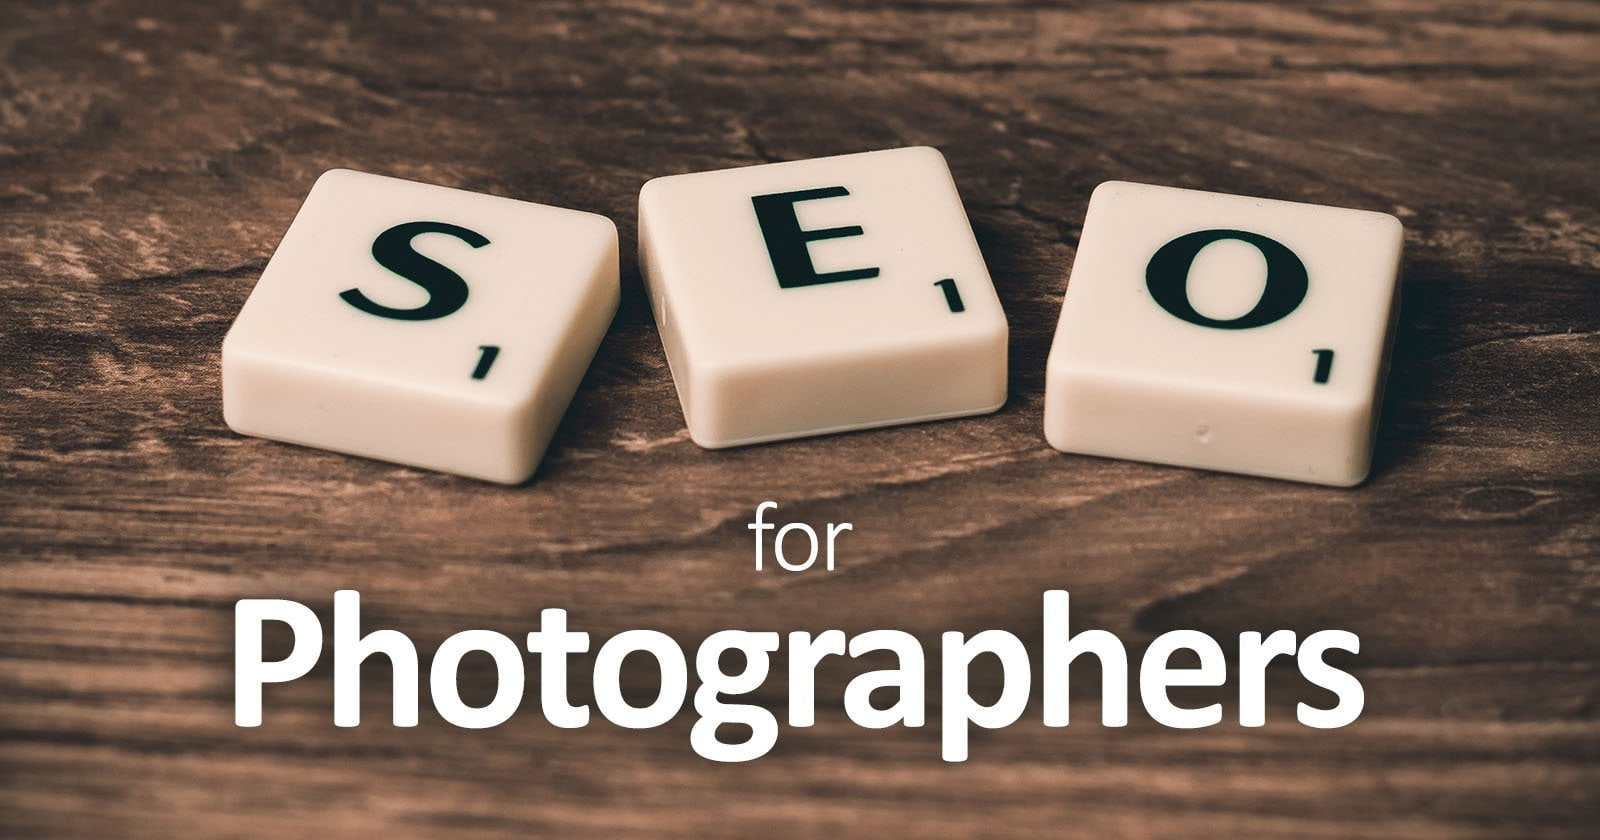 5 SEO Pro Tips for Your Photo Website